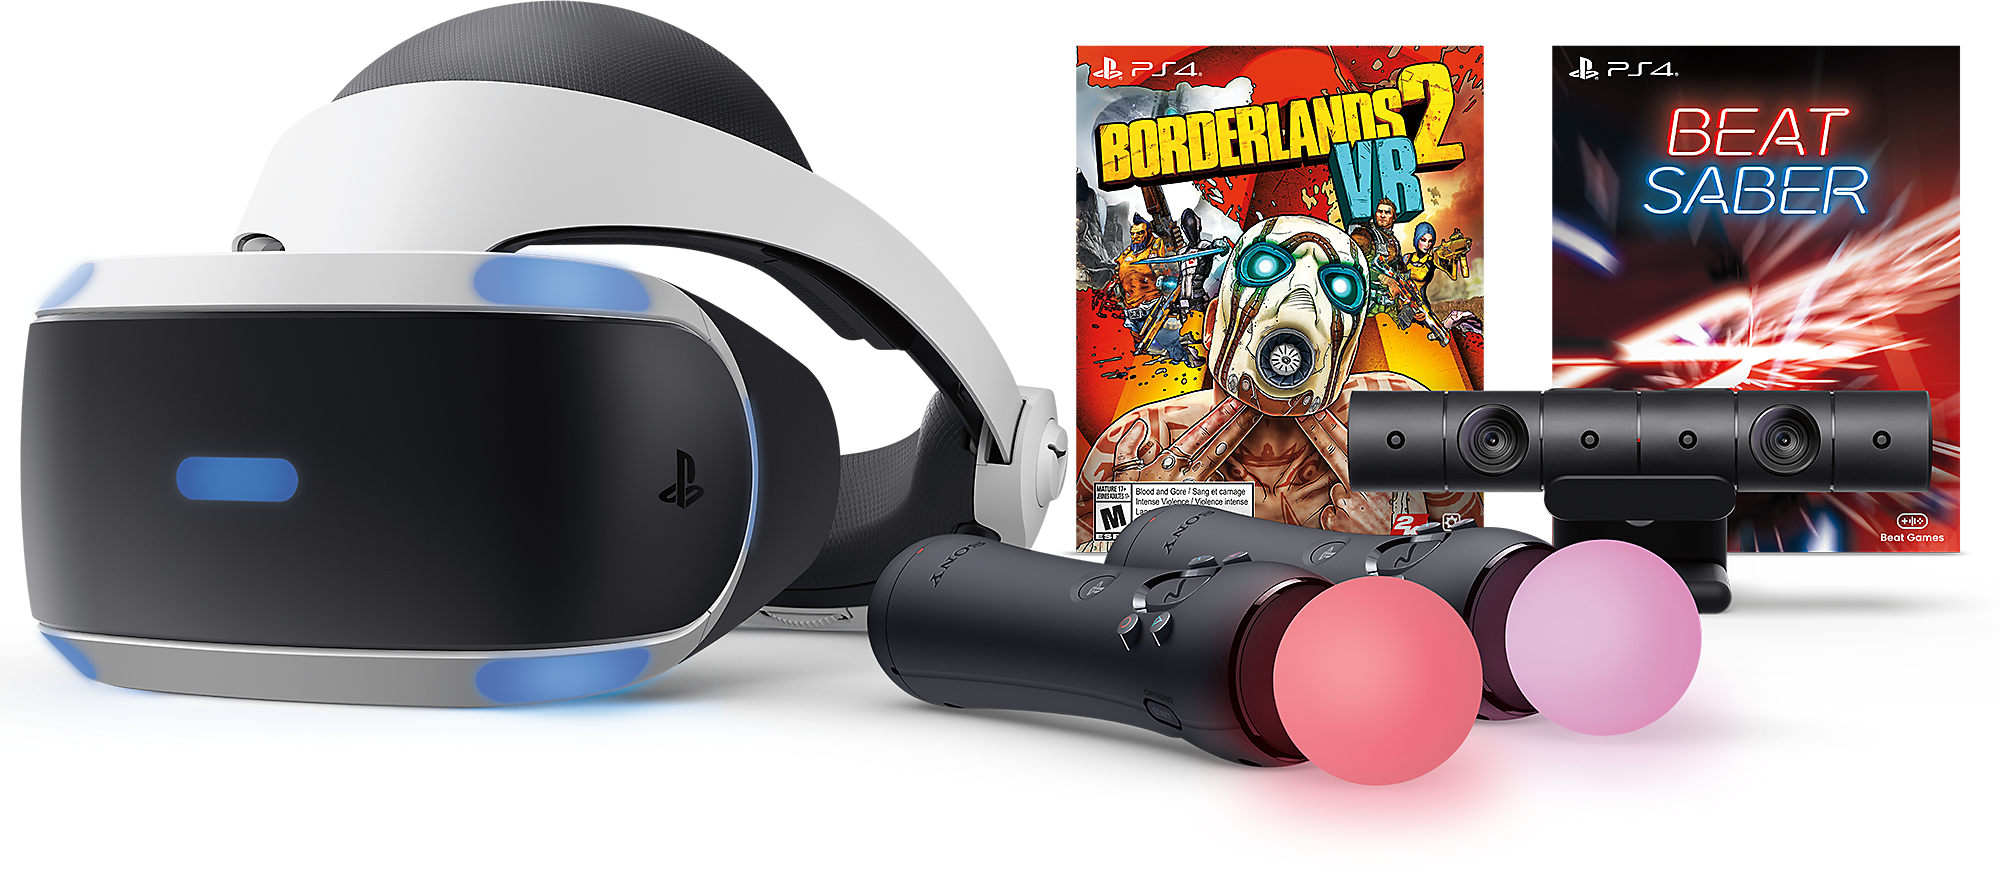 Borderlands 2 and Beat Saber VR Bundle art